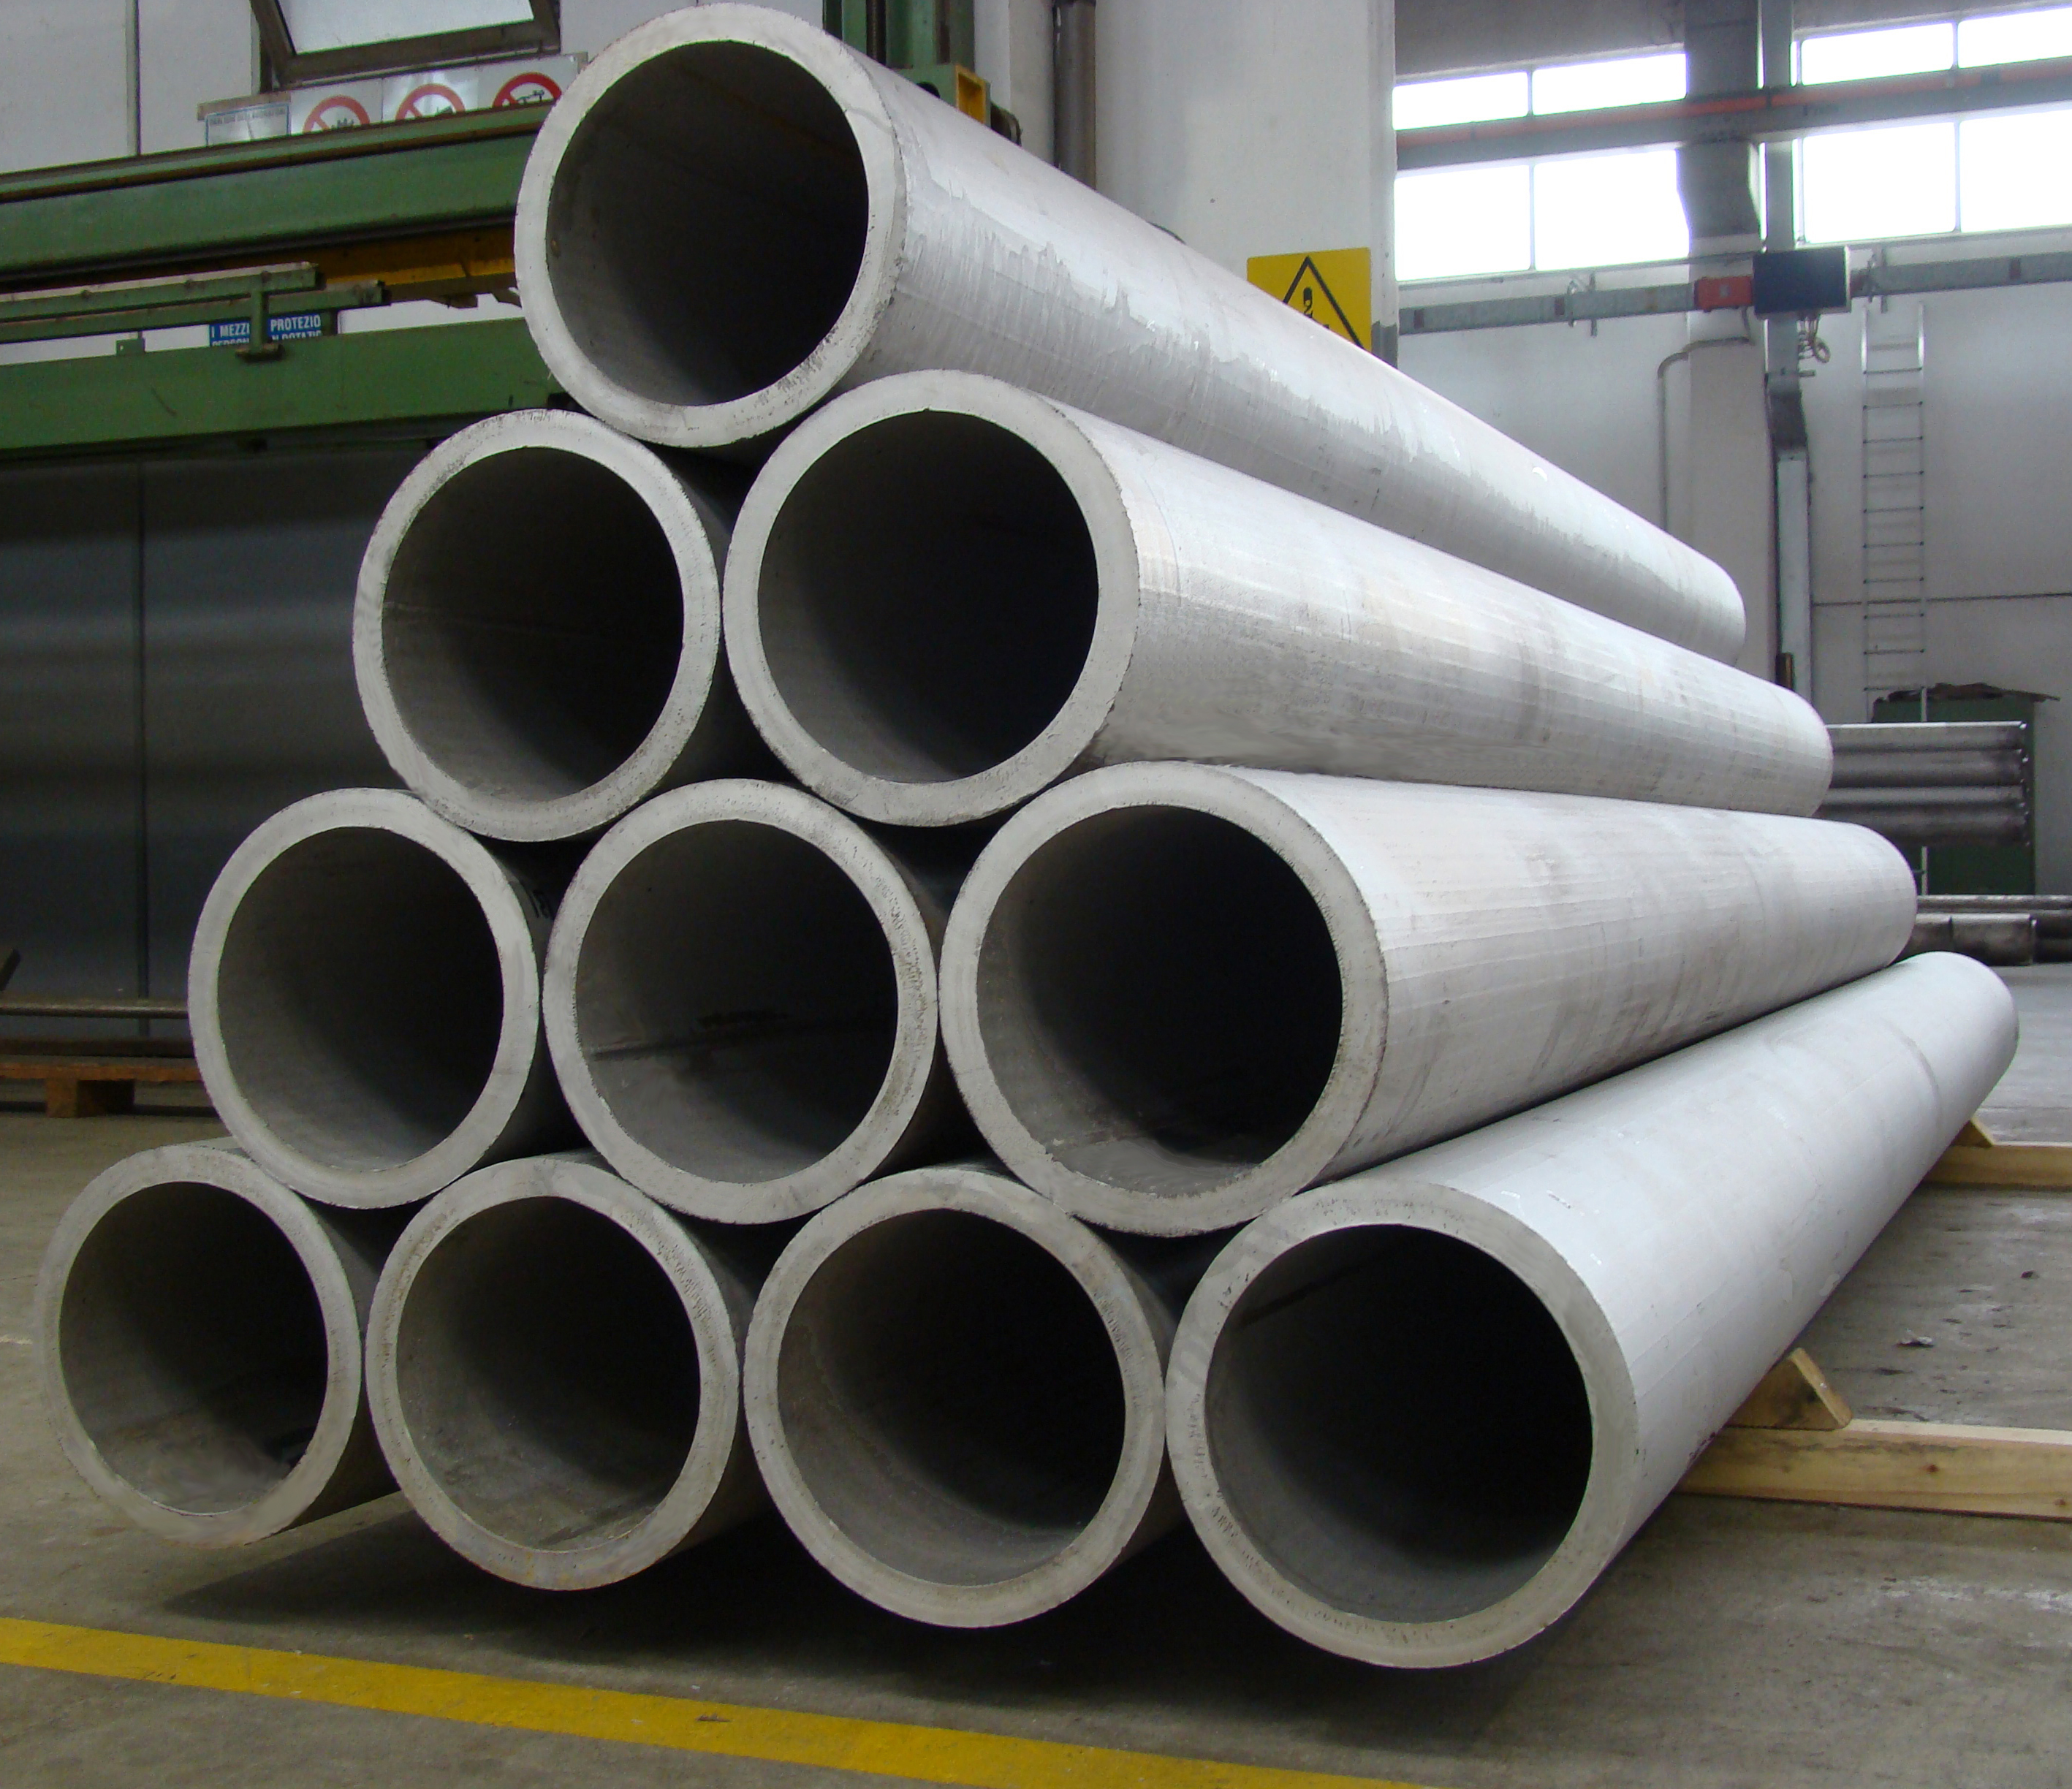 WELDED PIPES - made from plates with diameters ranging from 80 to 2500 mm, thickness from 2 to 60 mm and lengths up to